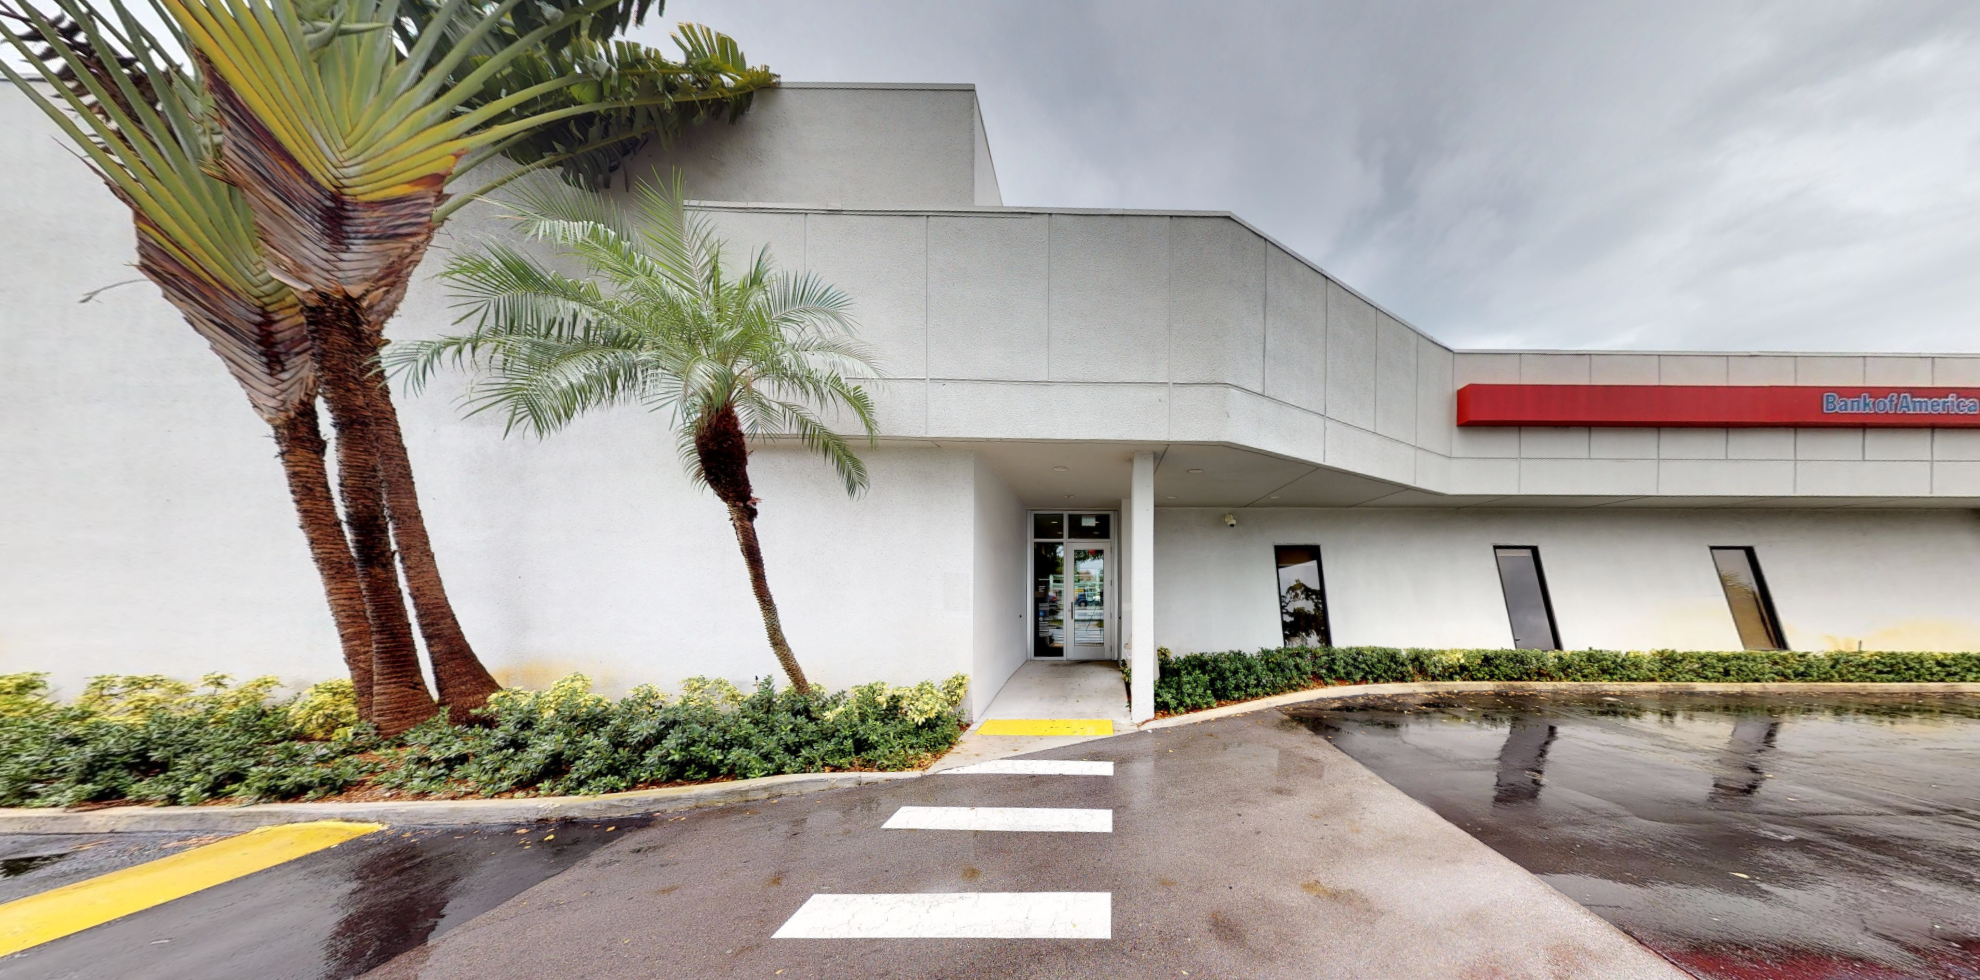 Bank of America financial center with drive-thru ATM | 13595 S Dixie Hwy, Pinecrest, FL 33156